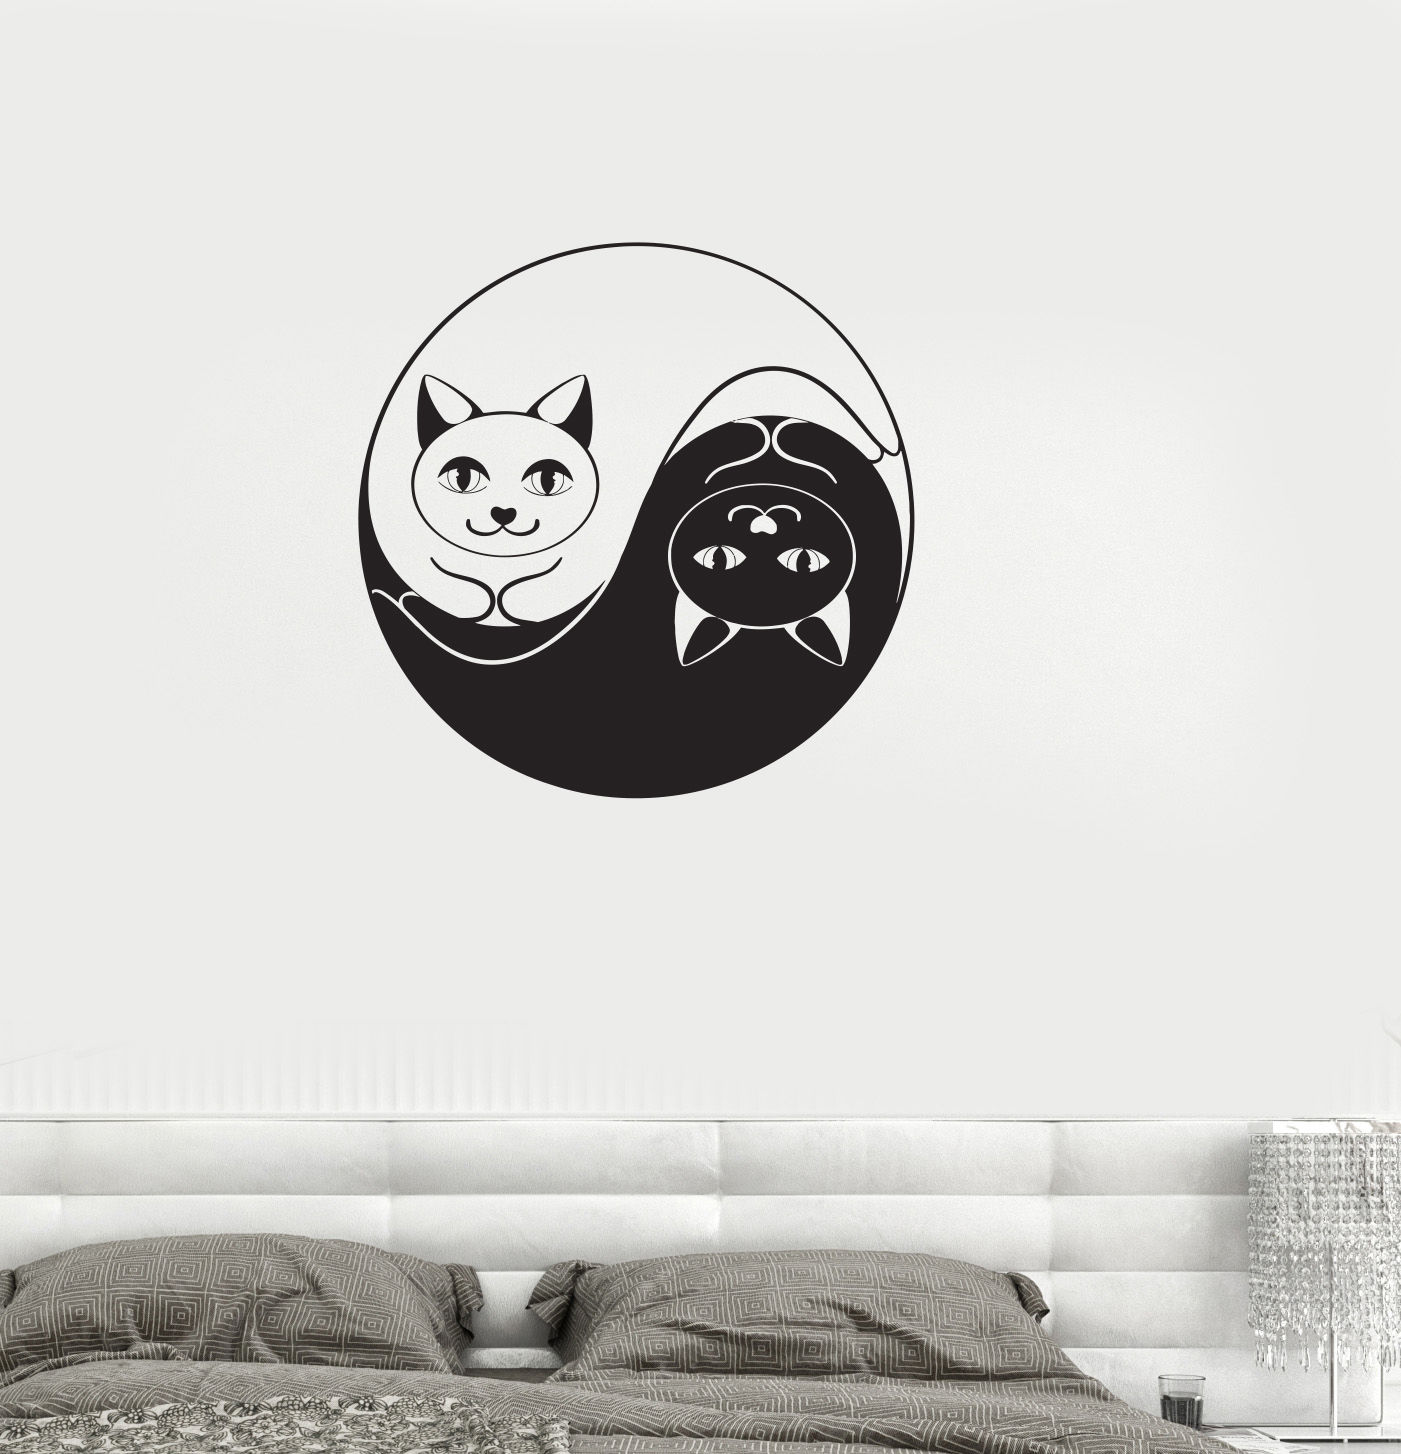 animal Vinyl Decal Yin Yang Cat Dao Taoism Zen Bedroom Decor Wall Stickers free shipping(China (Mainland))